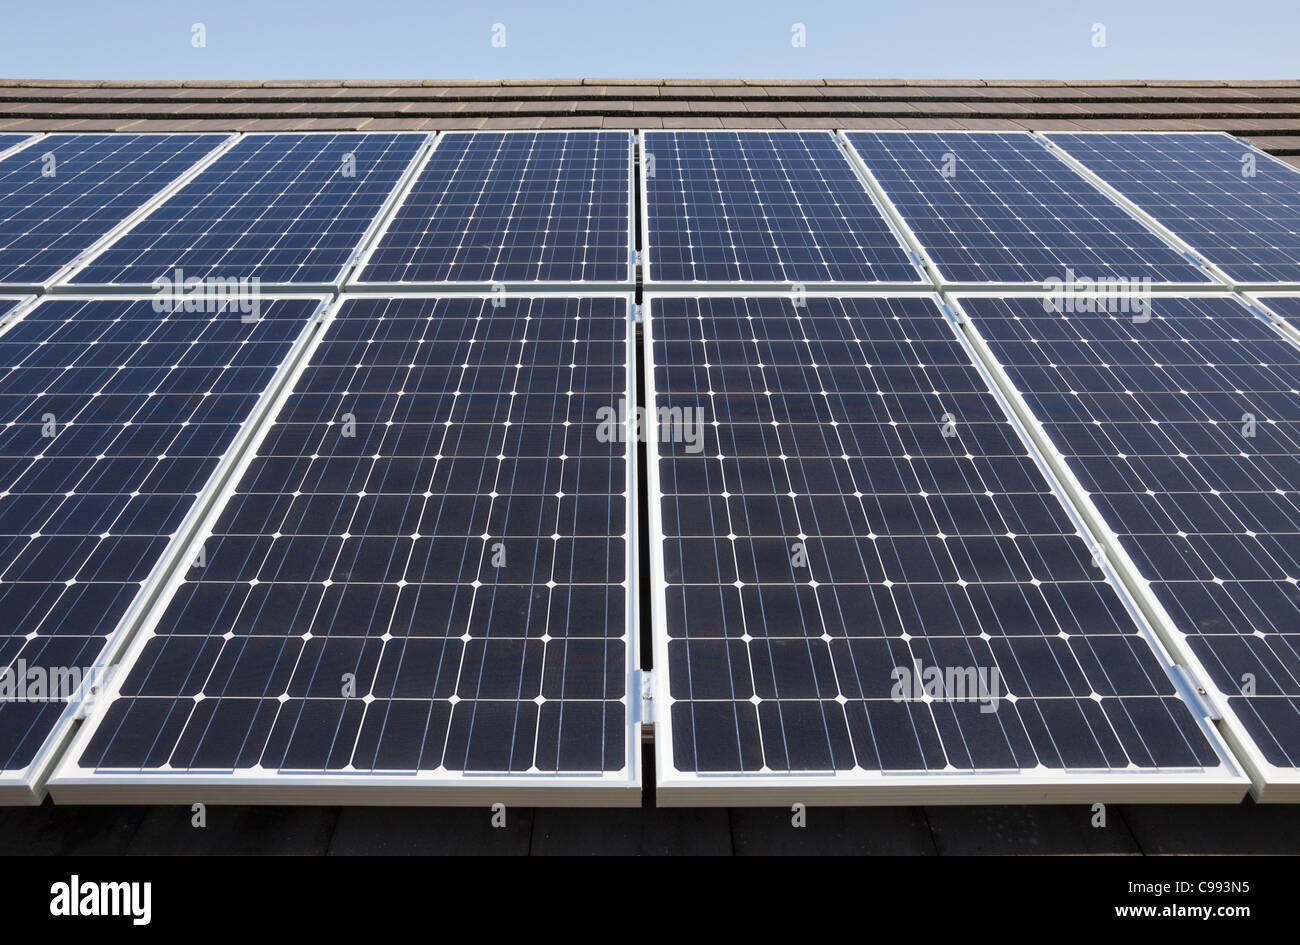 Close-up of solar panels on an energy efficient house roof. UK, Britain, Europe. - Stock Image